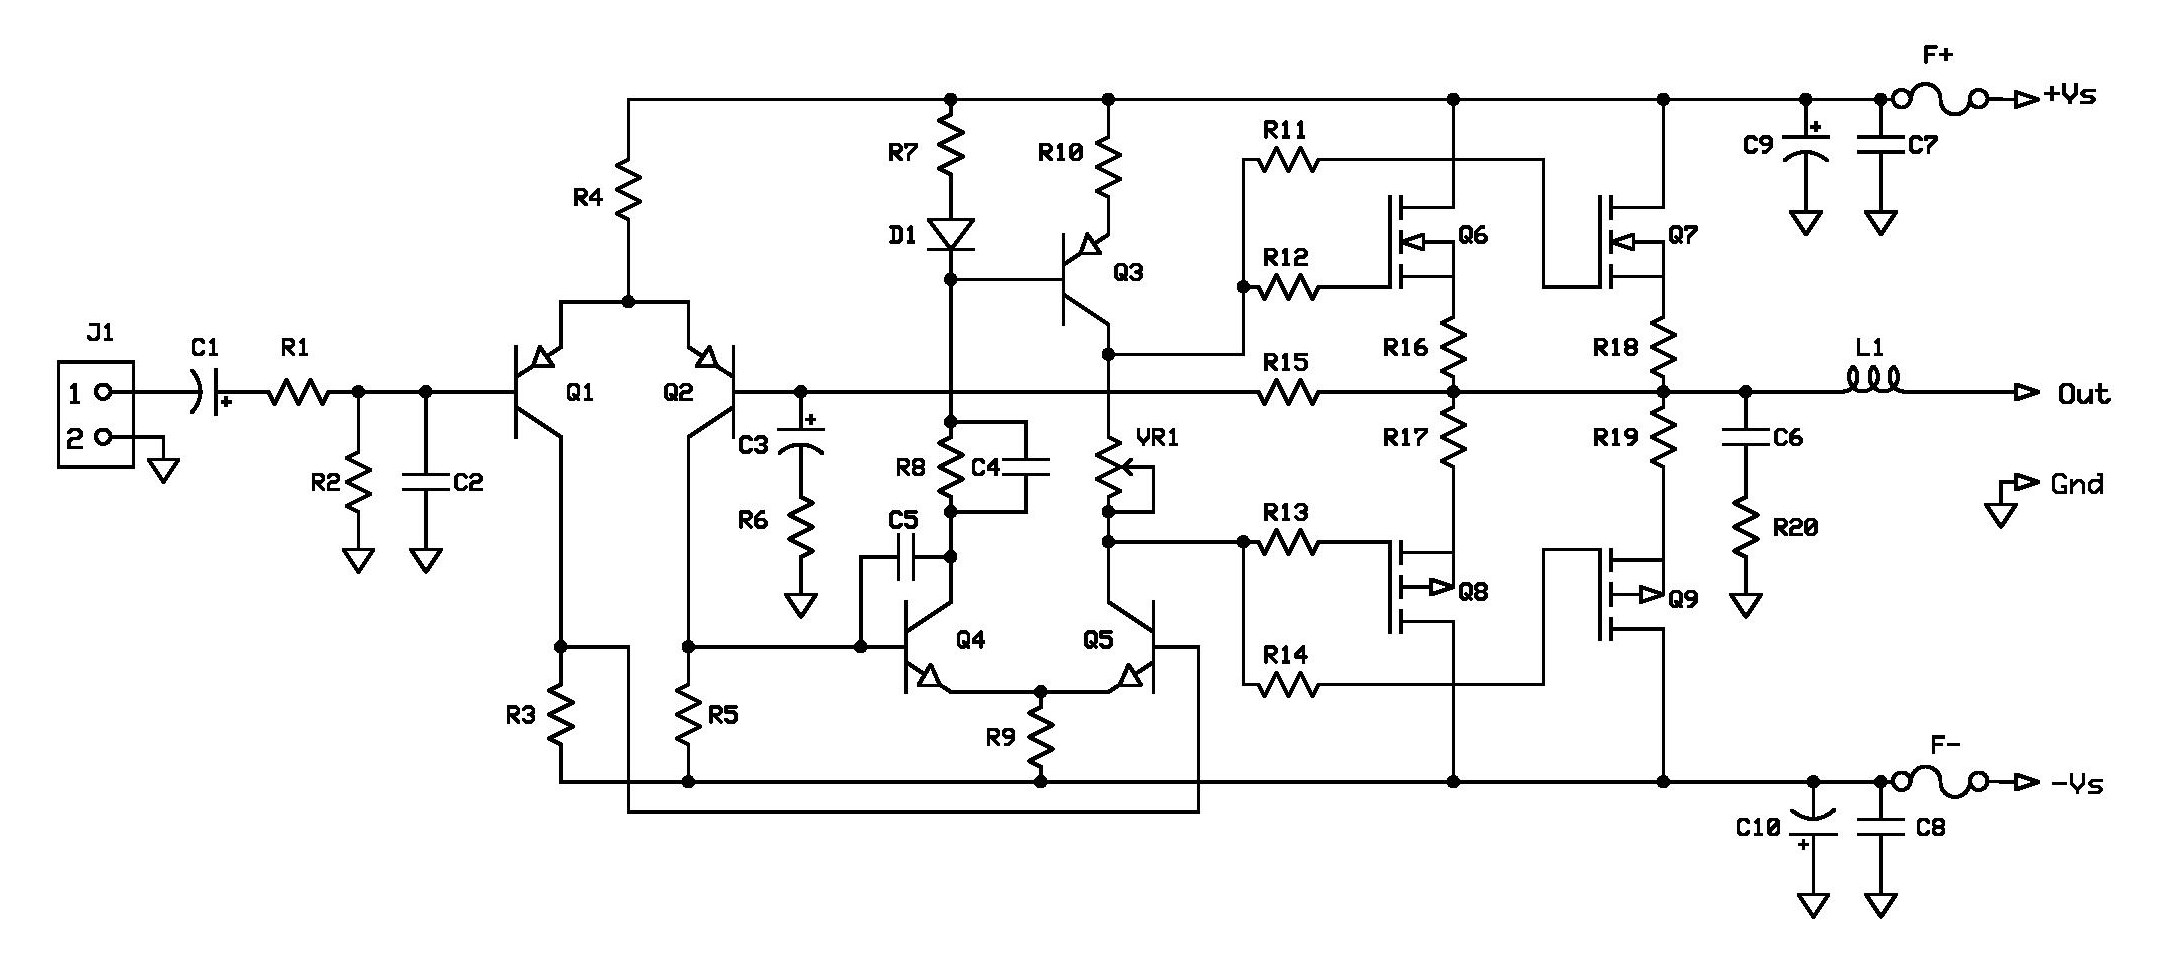 mpa1 100w mosfet schematic diagram-page-001